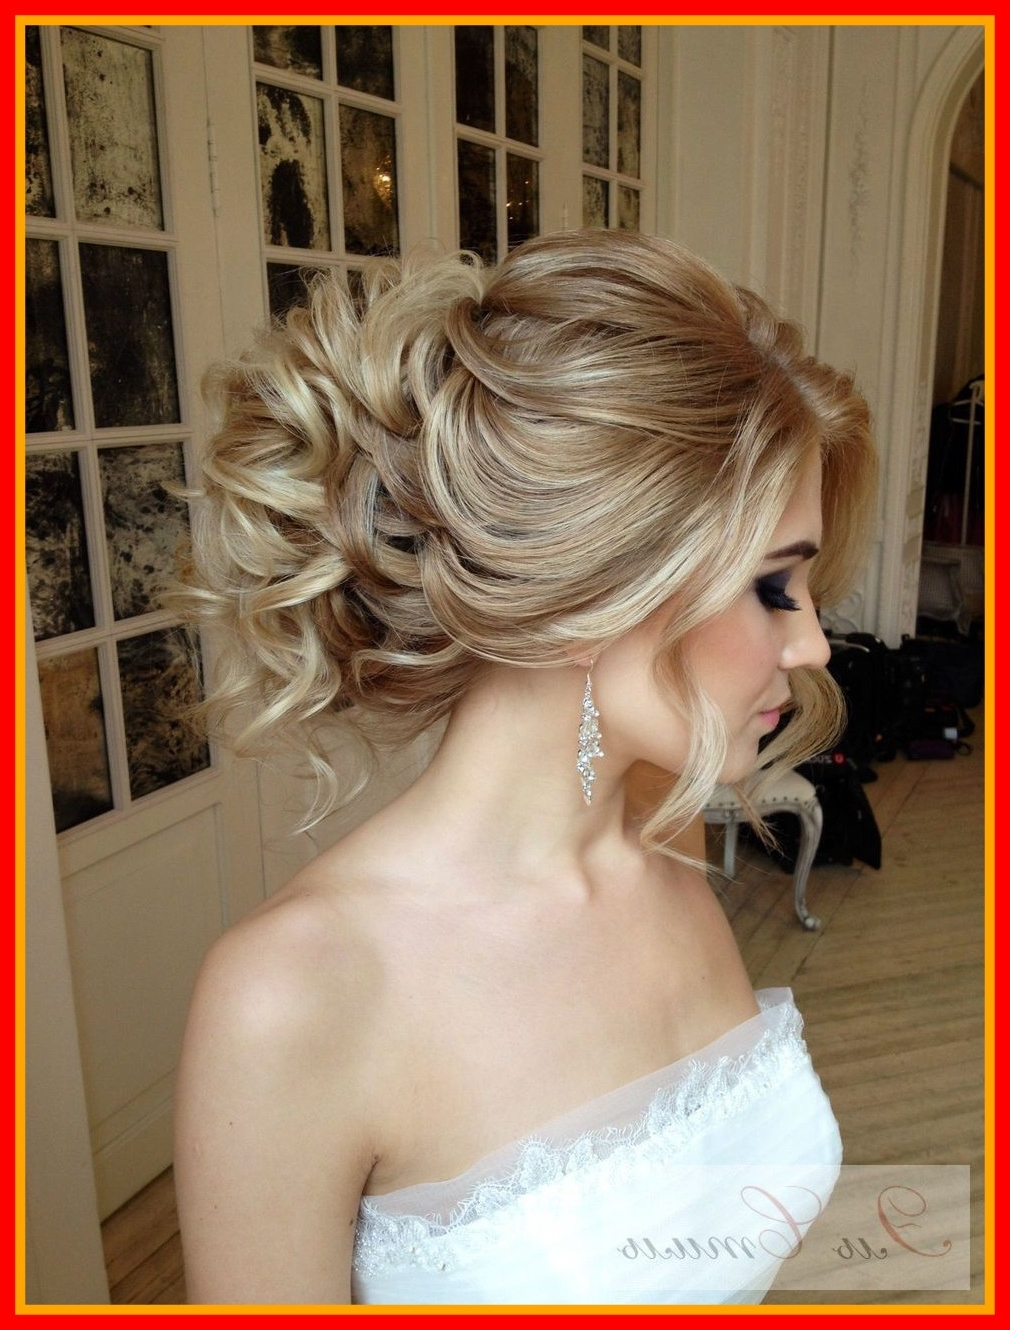 2017 Wedding Hairstyles With Extensions Intended For The Best Clip In Hair Extensions Of Wedding Hairstyles For Medium (View 15 of 15)